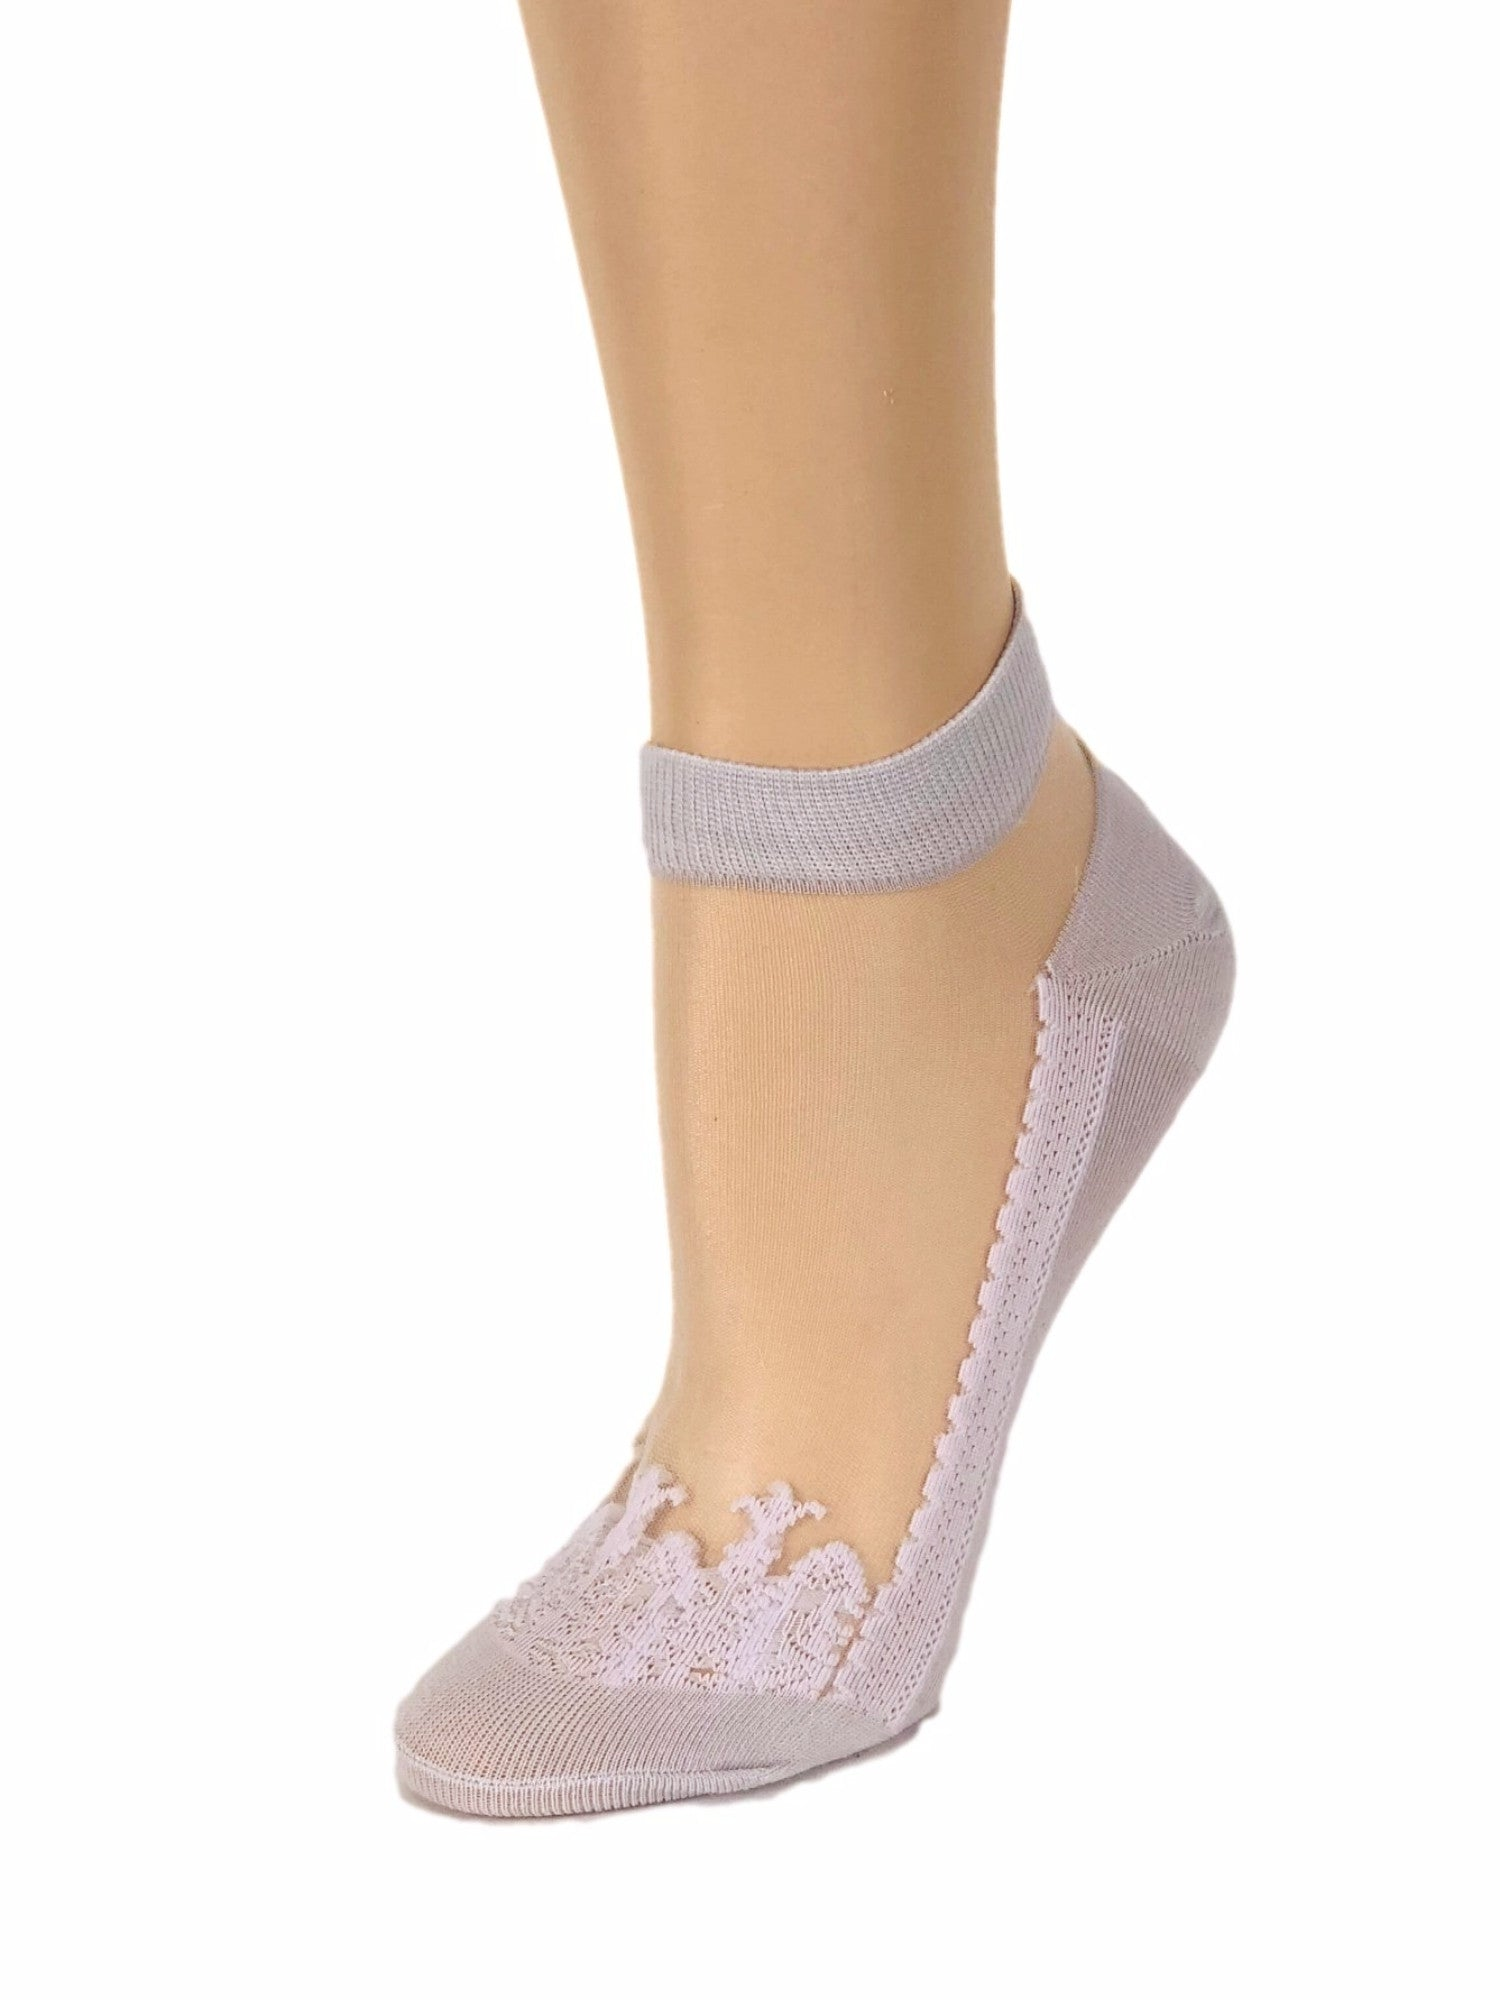 Cream Grey Ankle Sheer Socks - Global Trendz Fashion®